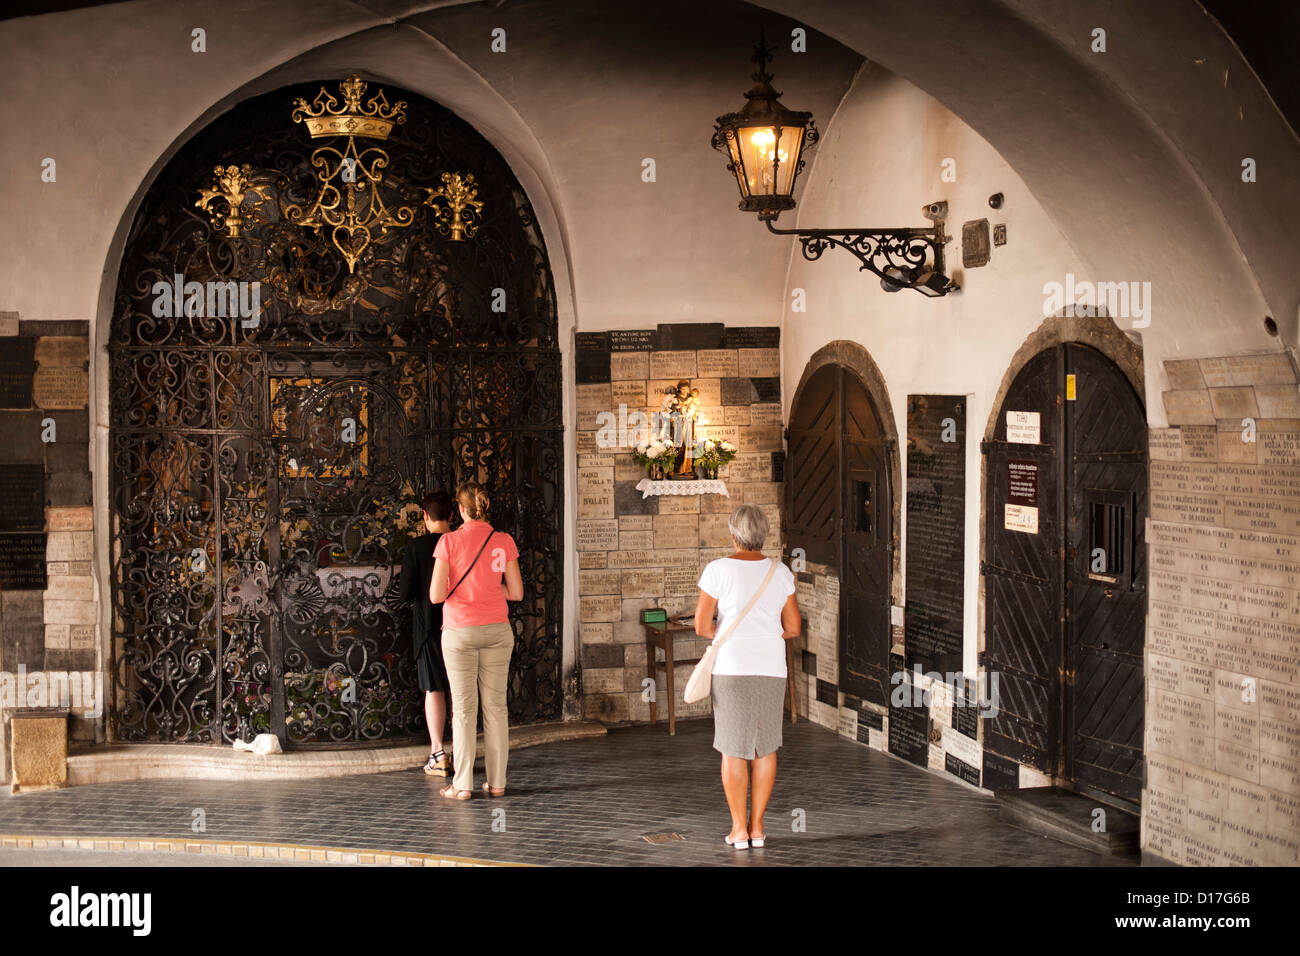 People praying at the Shrine to the Virgin Mary in the Stone Gate entrance to the old town in Zagreb, the capital - Stock Image